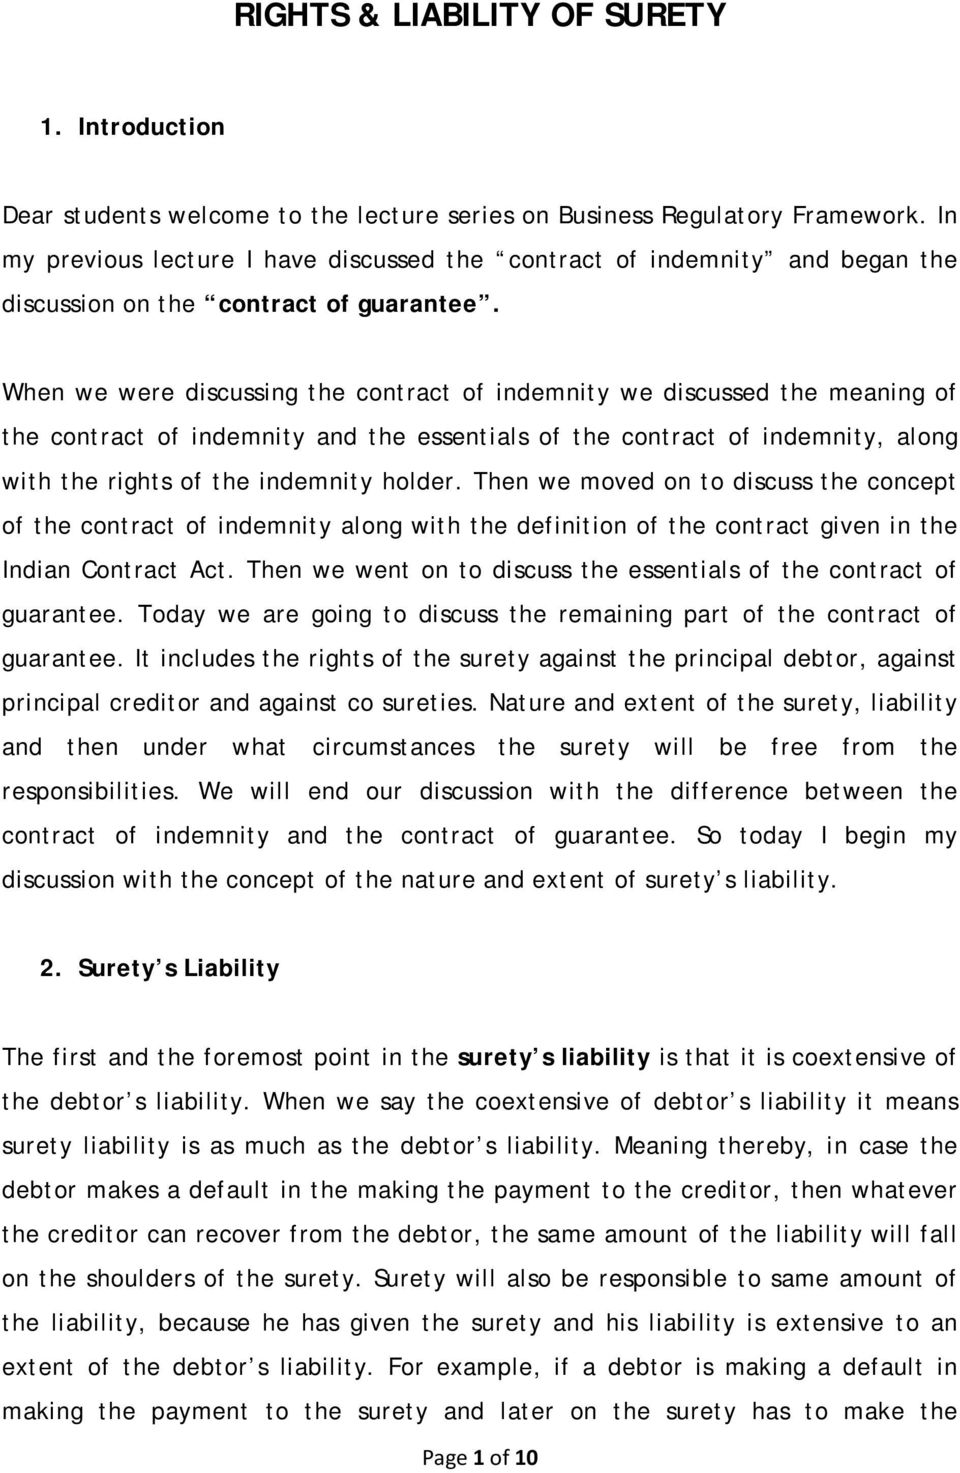 Rights Liability Of Surety Pdf